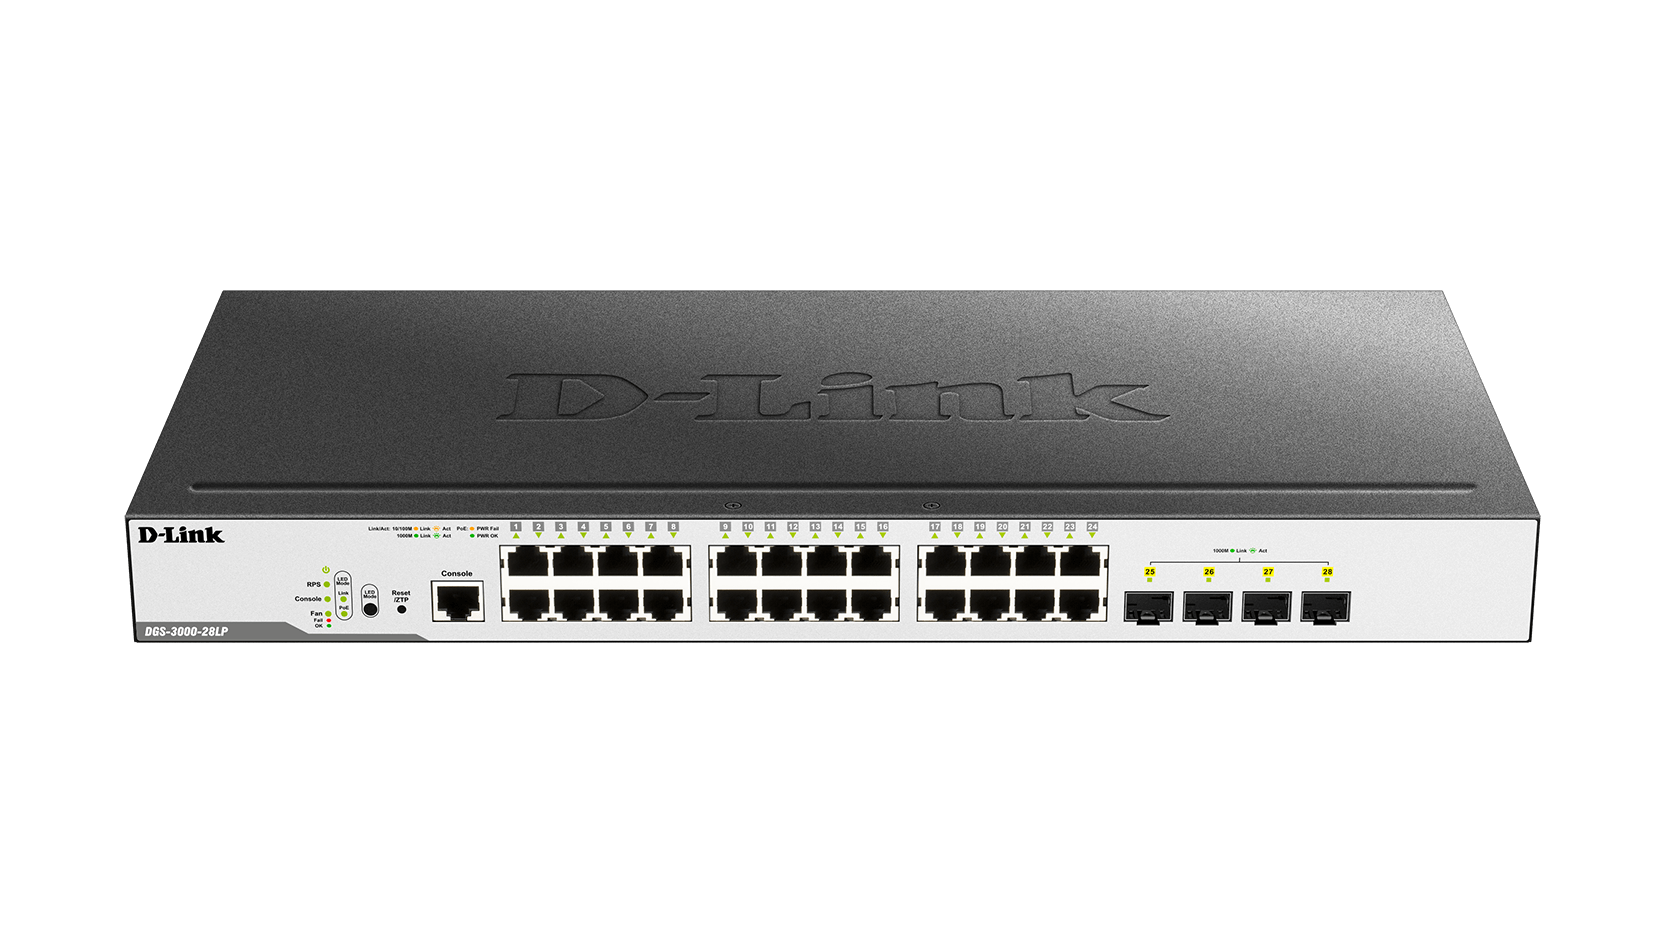 DGS-3000-28LP Gigabit L2 Managed Switch